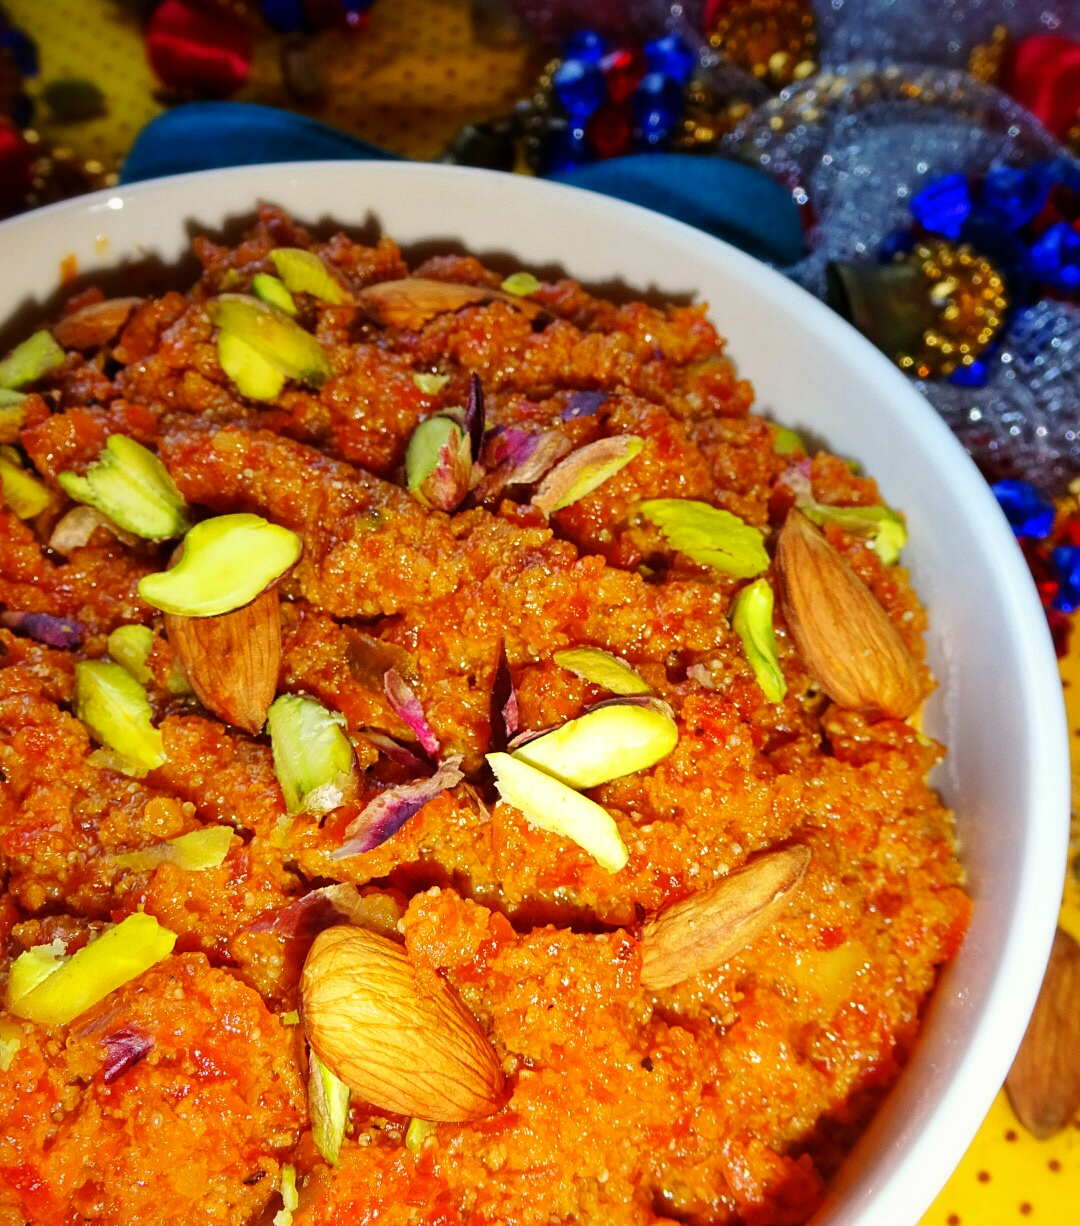 Veg indian good food recipes gajar ka halwa how to prepare gajar ka halwa carrot pudding recipe gajar ka halwa with khoya recipe gajar halwa recipe winter special indian sweet dish forumfinder Images